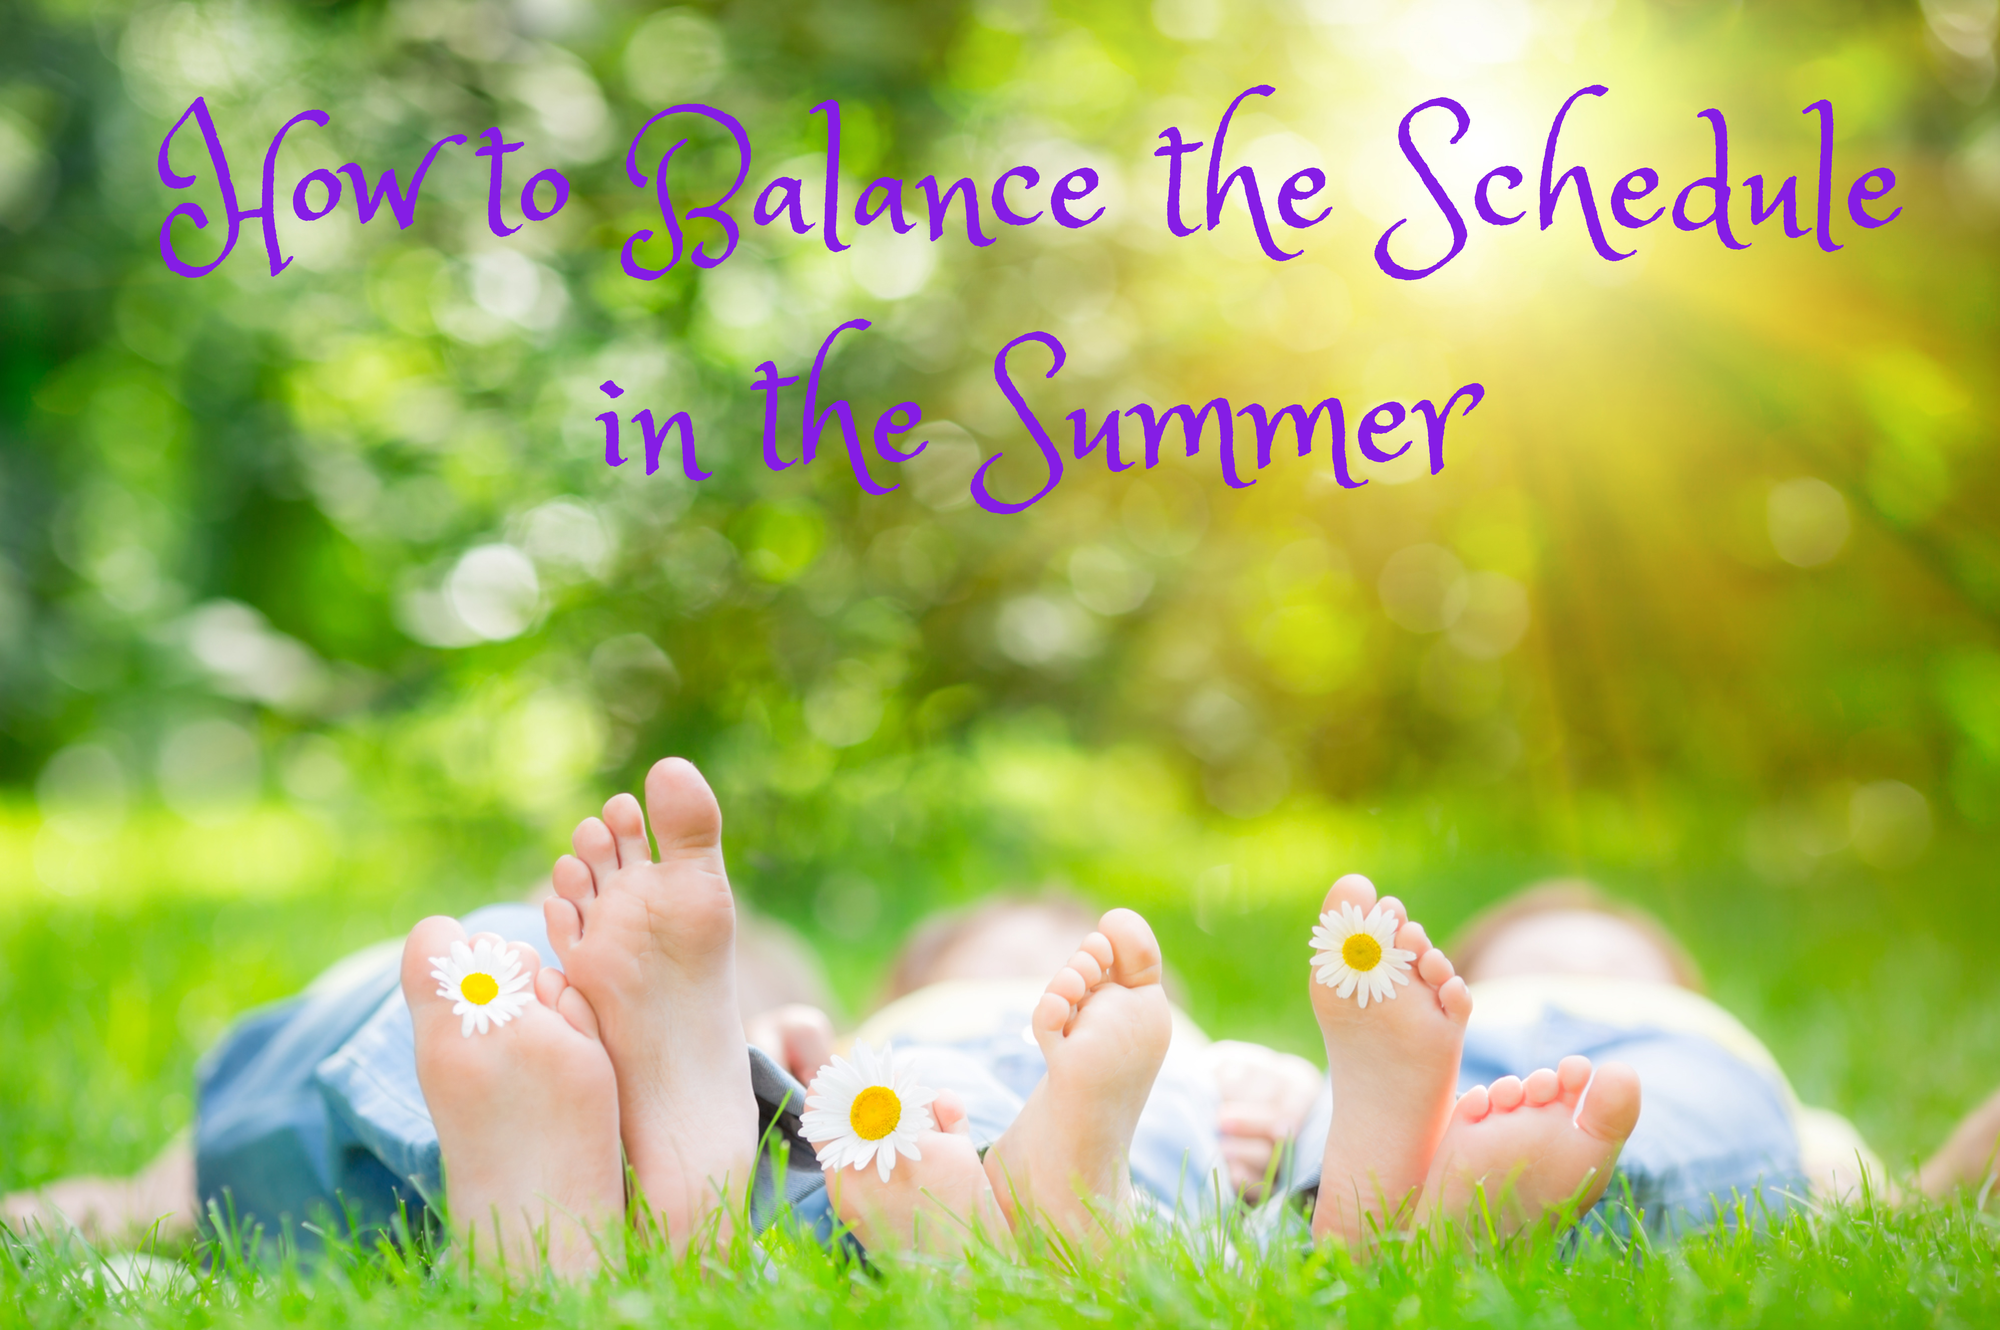 How to Balance the Summer Schedule